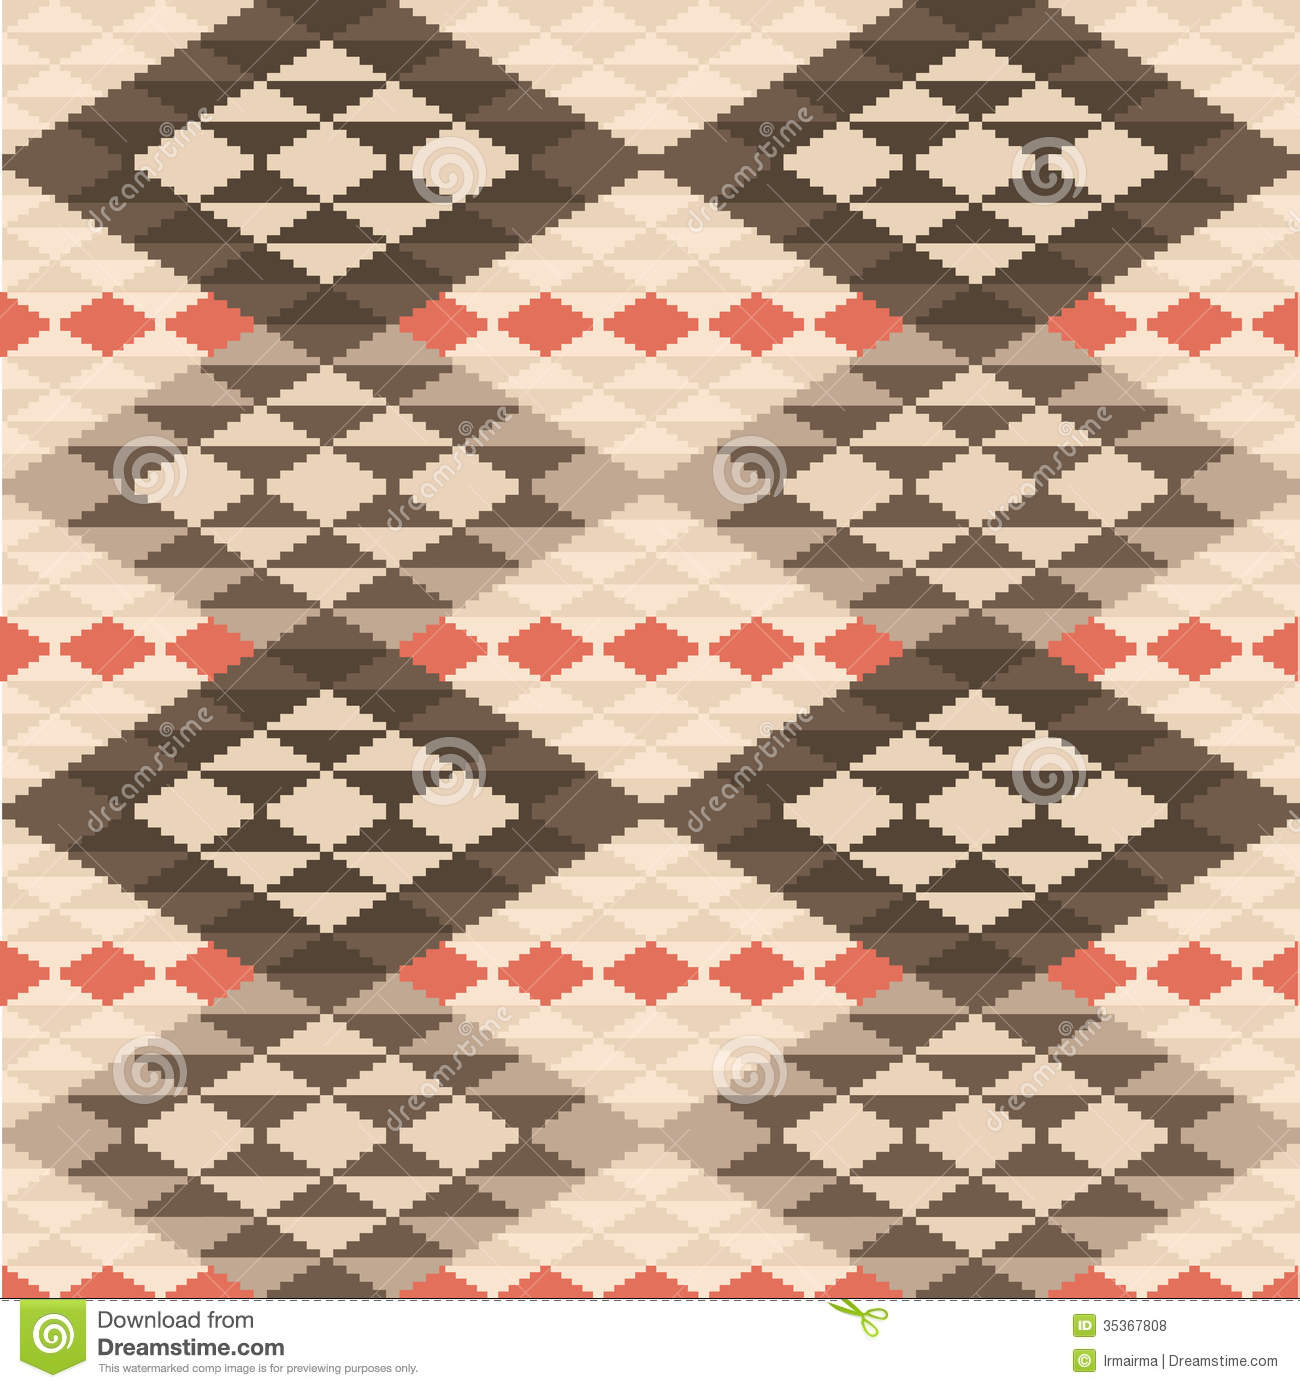 Abstract Geometric Ethnic Rug Pattern Royalty Free Stock